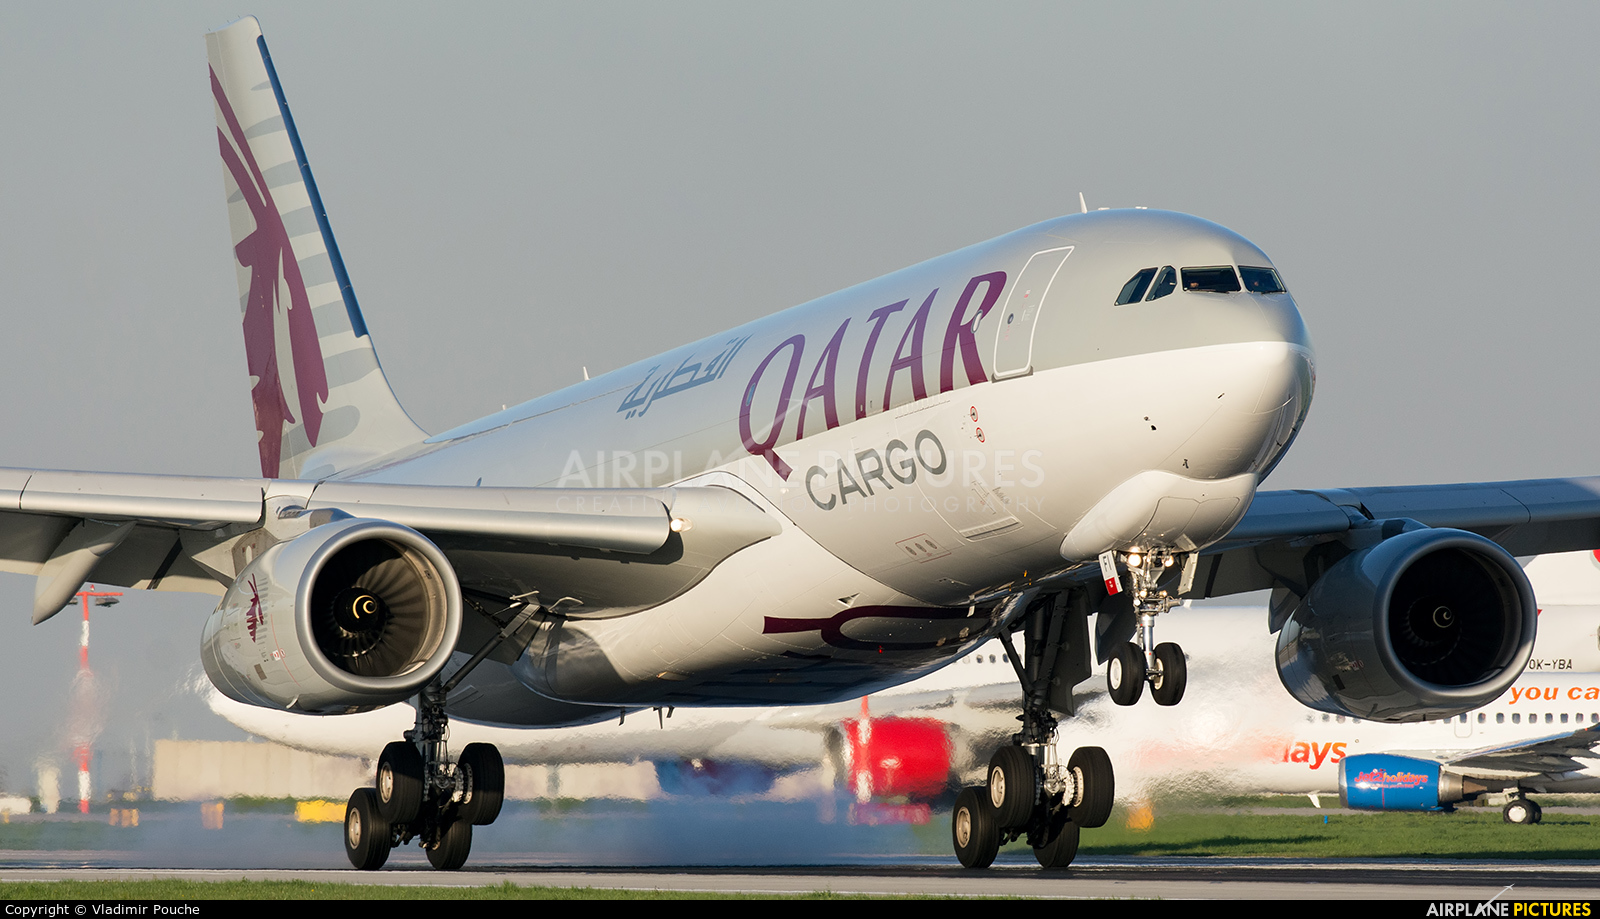 Qatar Airways Cargo A7-AFI aircraft at Prague - Václav Havel